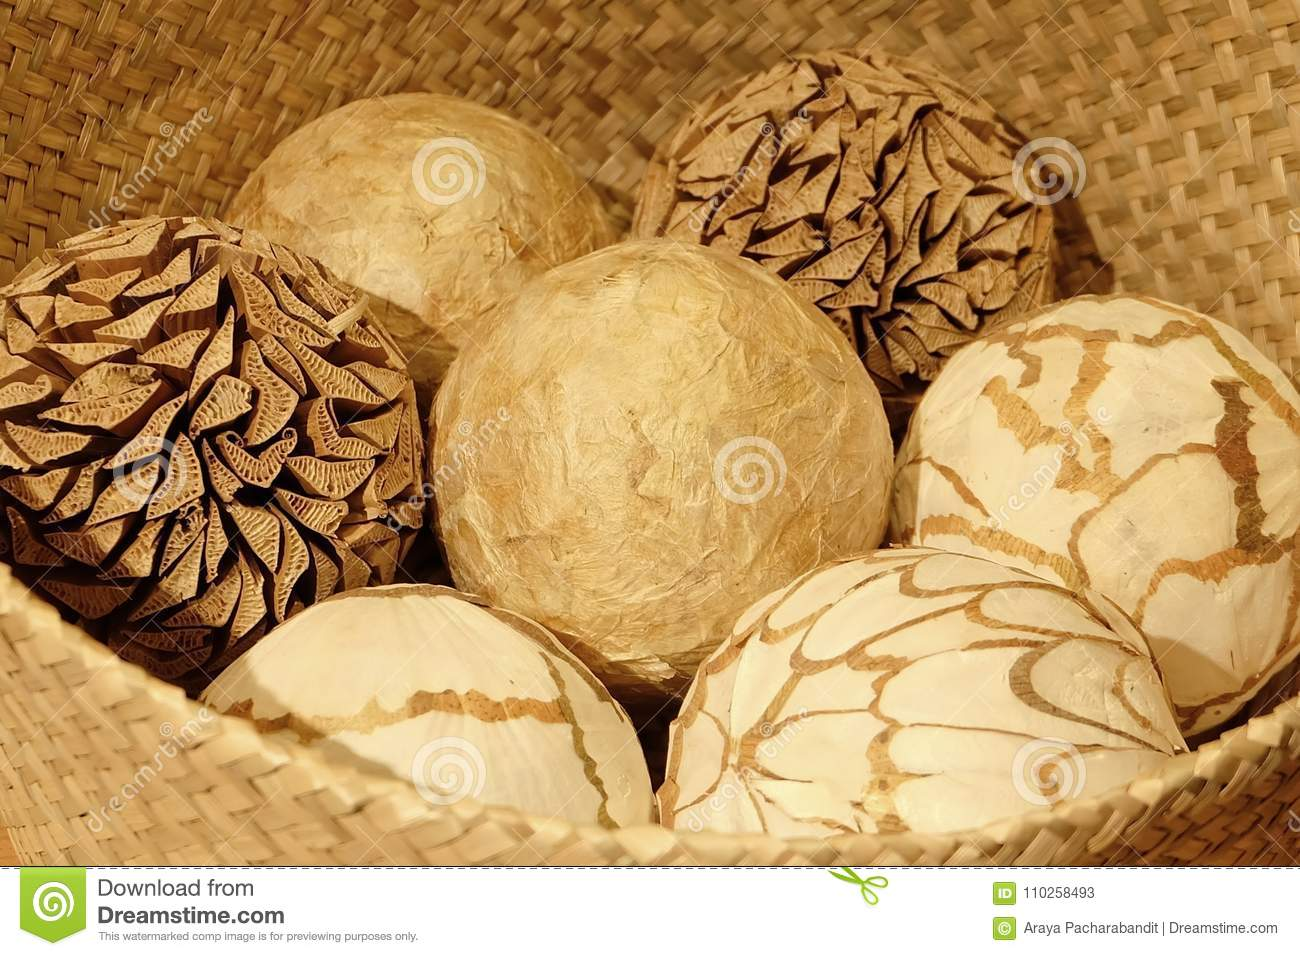 Natural Decorative Balls In A Wooden Basket Stock Image Image Of